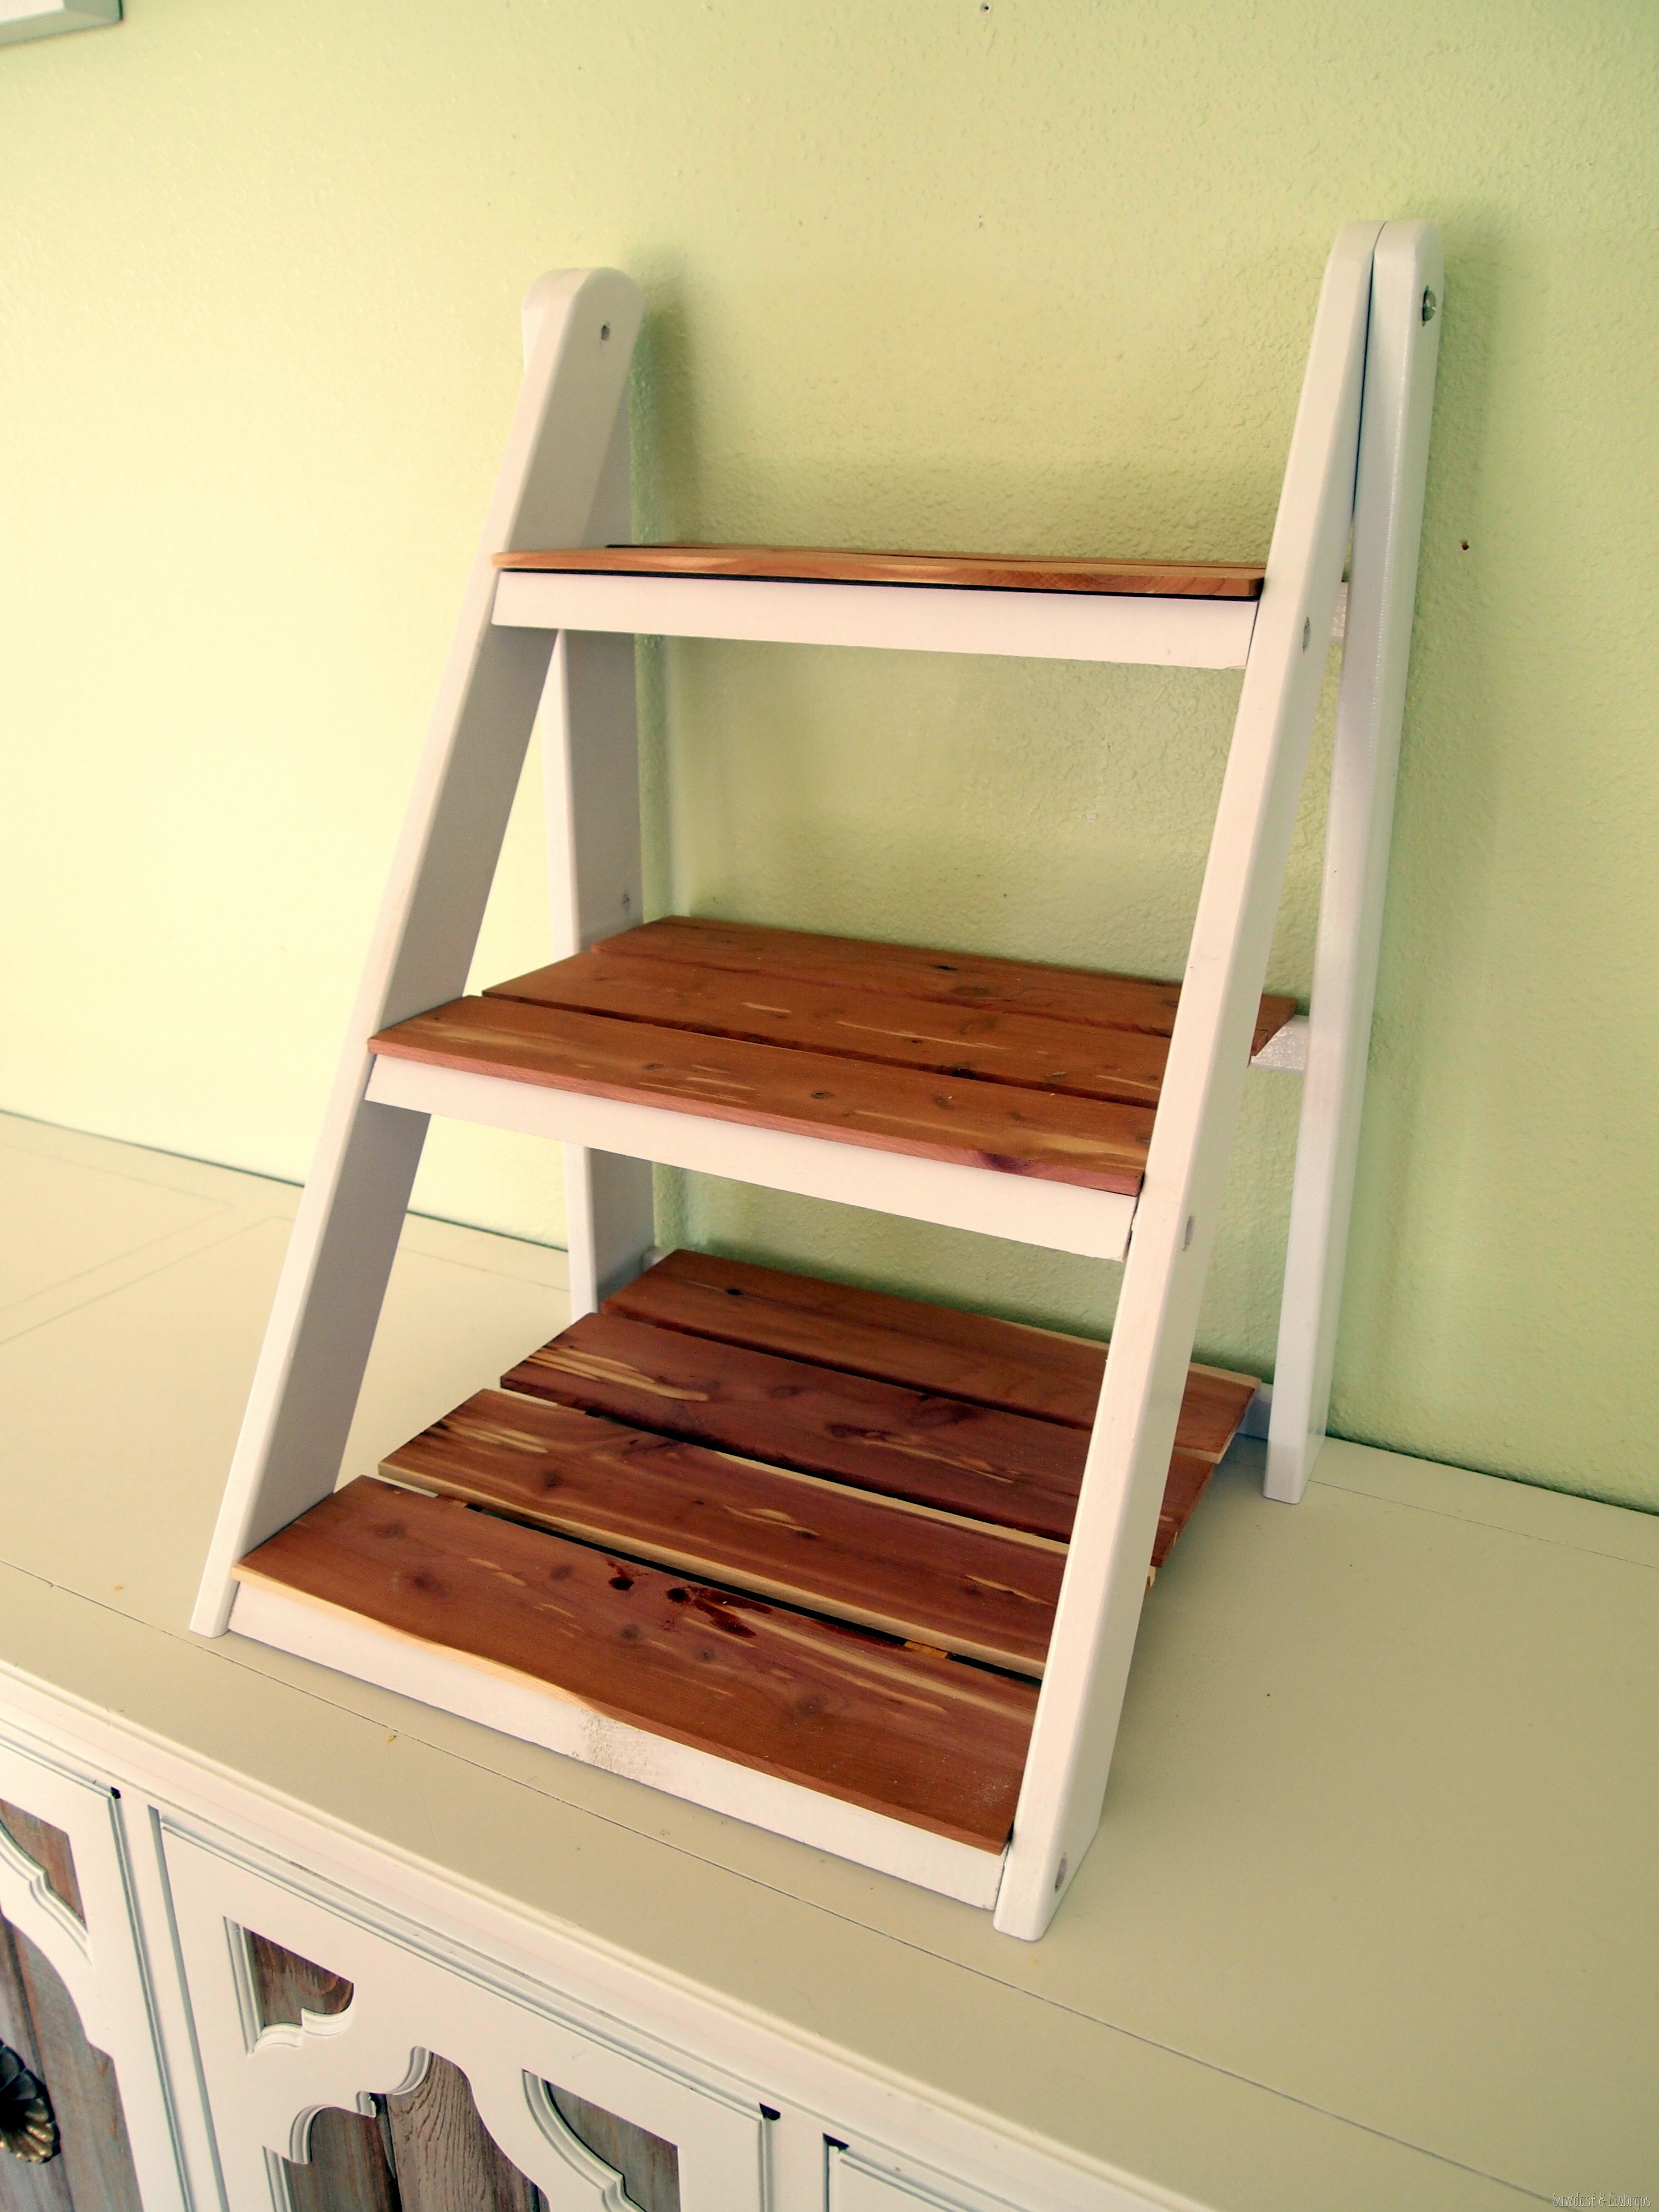 woodworking plans corner shelves | Online Woodworking Plans